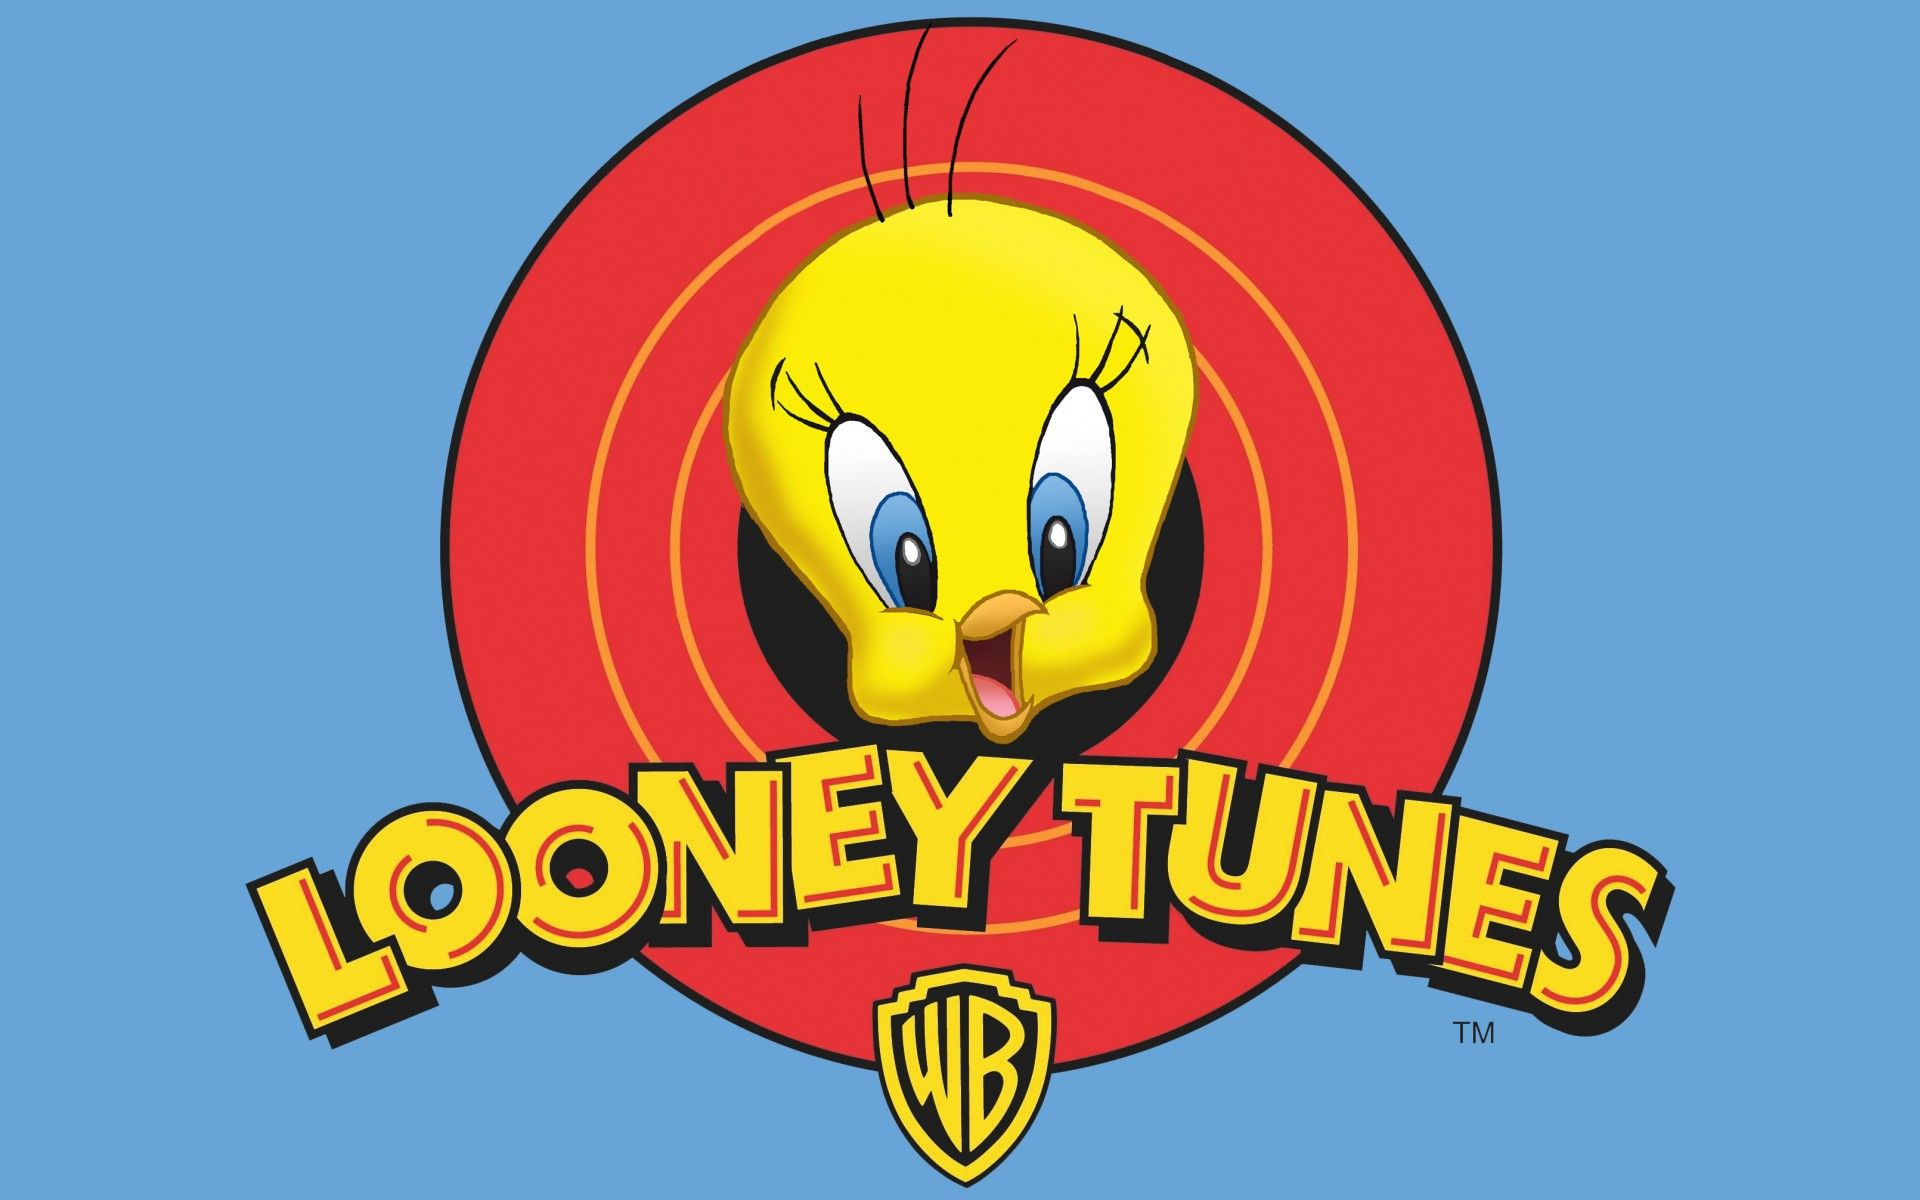 Looney Tunes Tweety Cartoon Picture Looney Tunes Tweety Cartoon Wallpaper Looney Tunes Looney Tunes Cartoons Looney